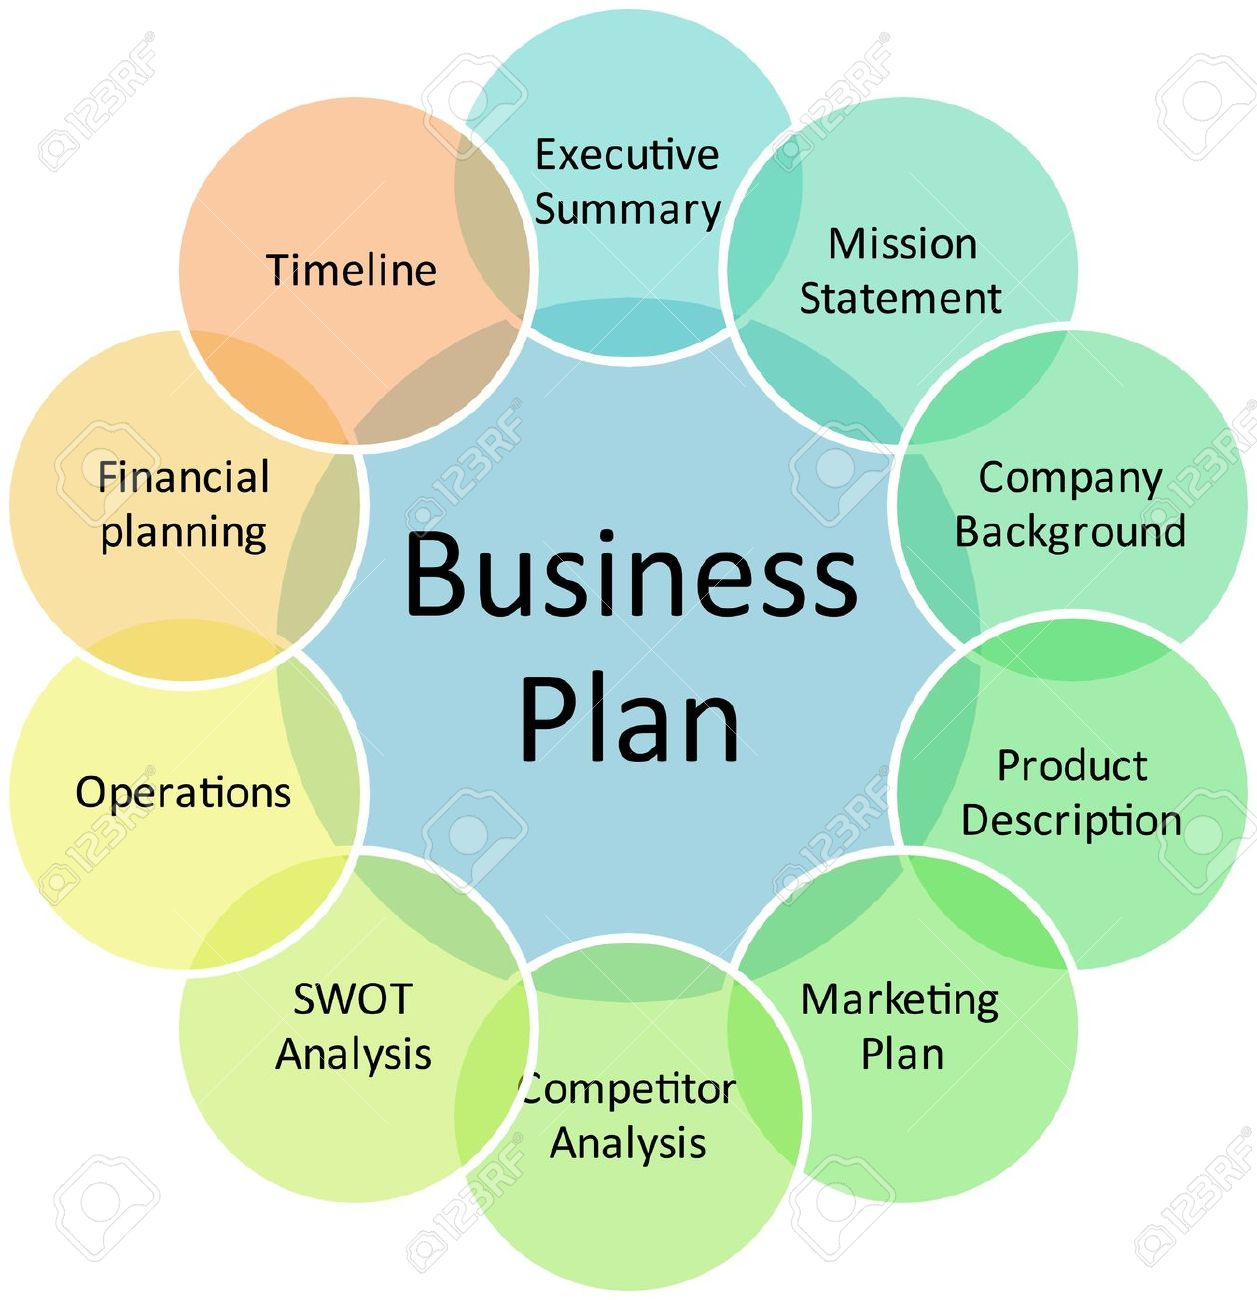 Business plan management components strategy concept diagram business plan management components strategy concept diagram illustration stock illustration 6645862 pooptronica